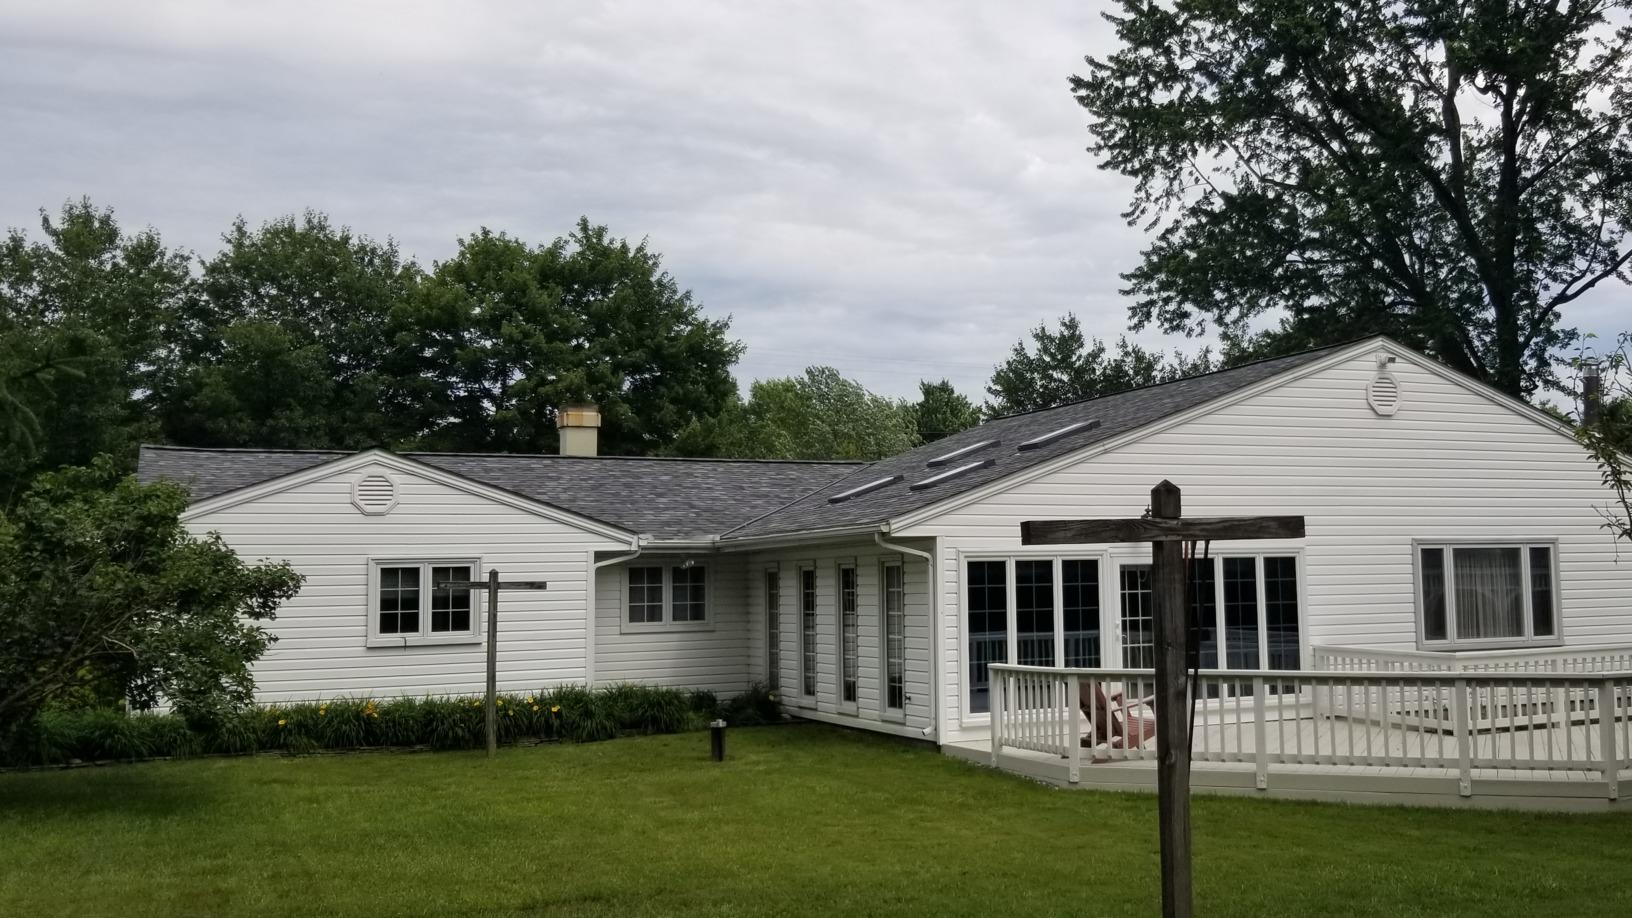 Chesterland Roof Replacement - After Photo